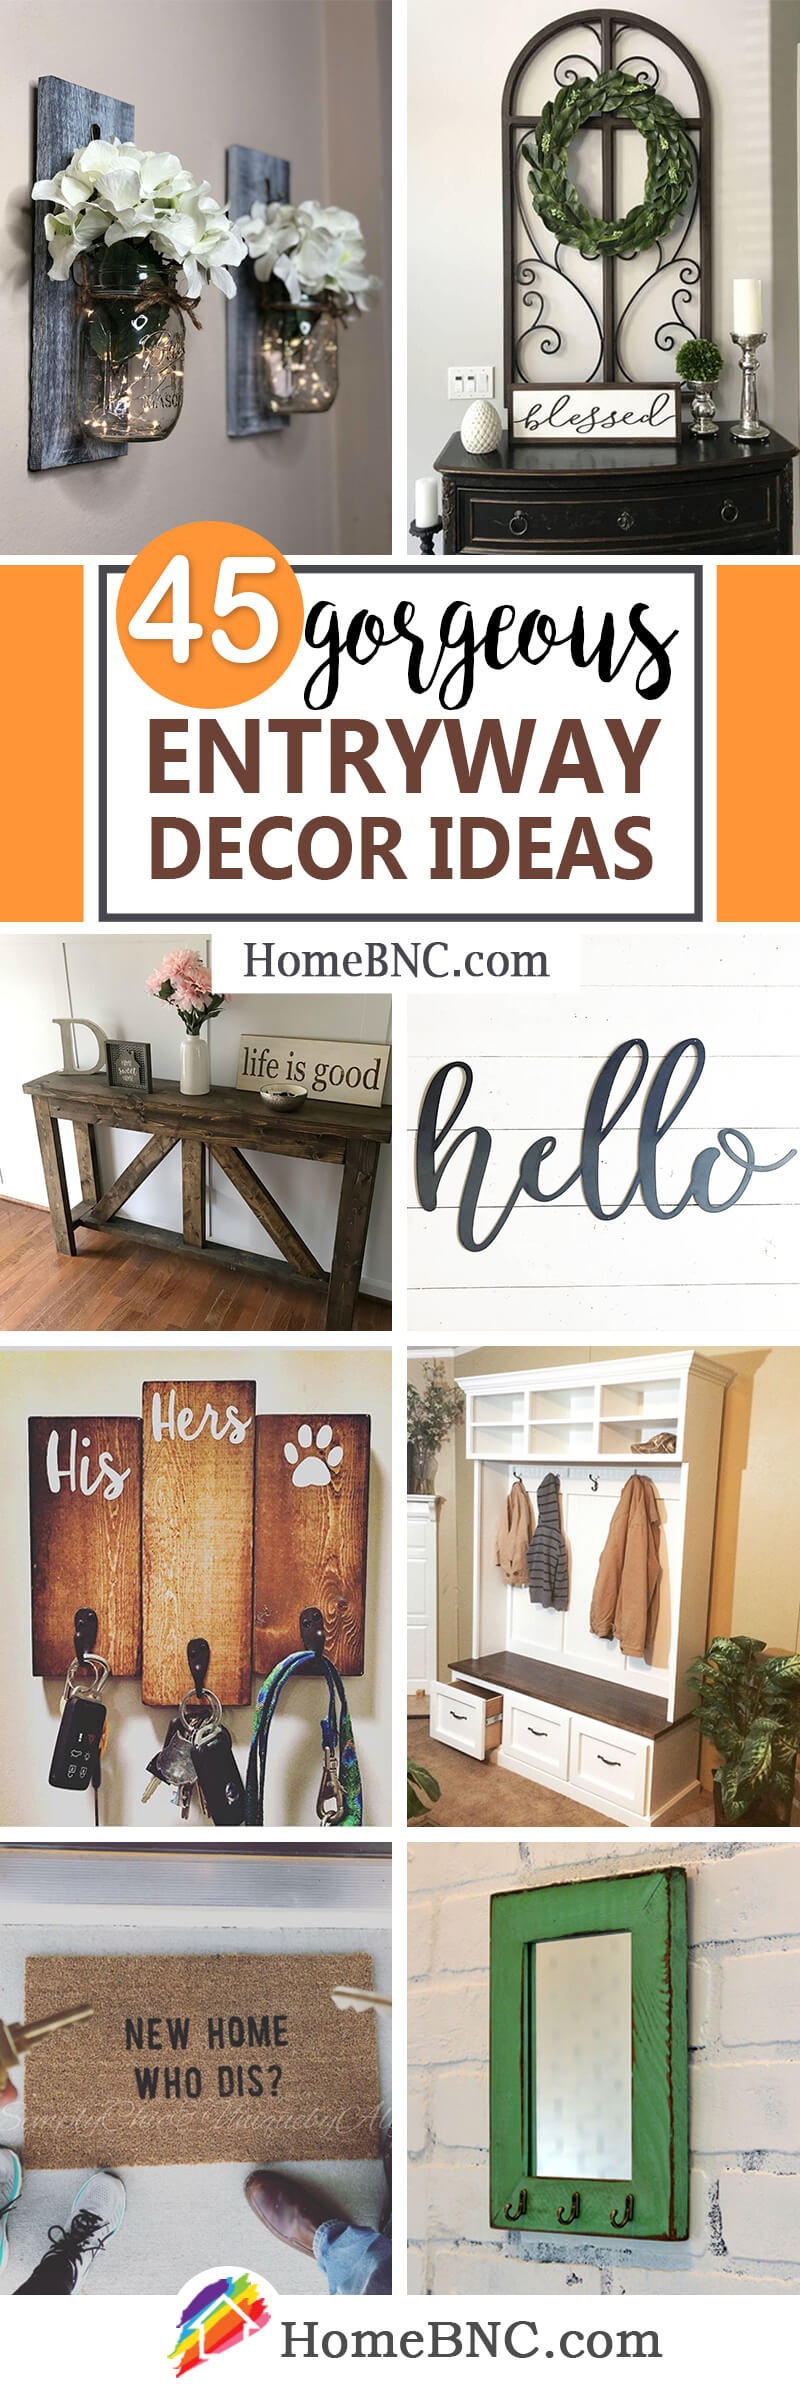 Entryway Decor Ideas from Etsy